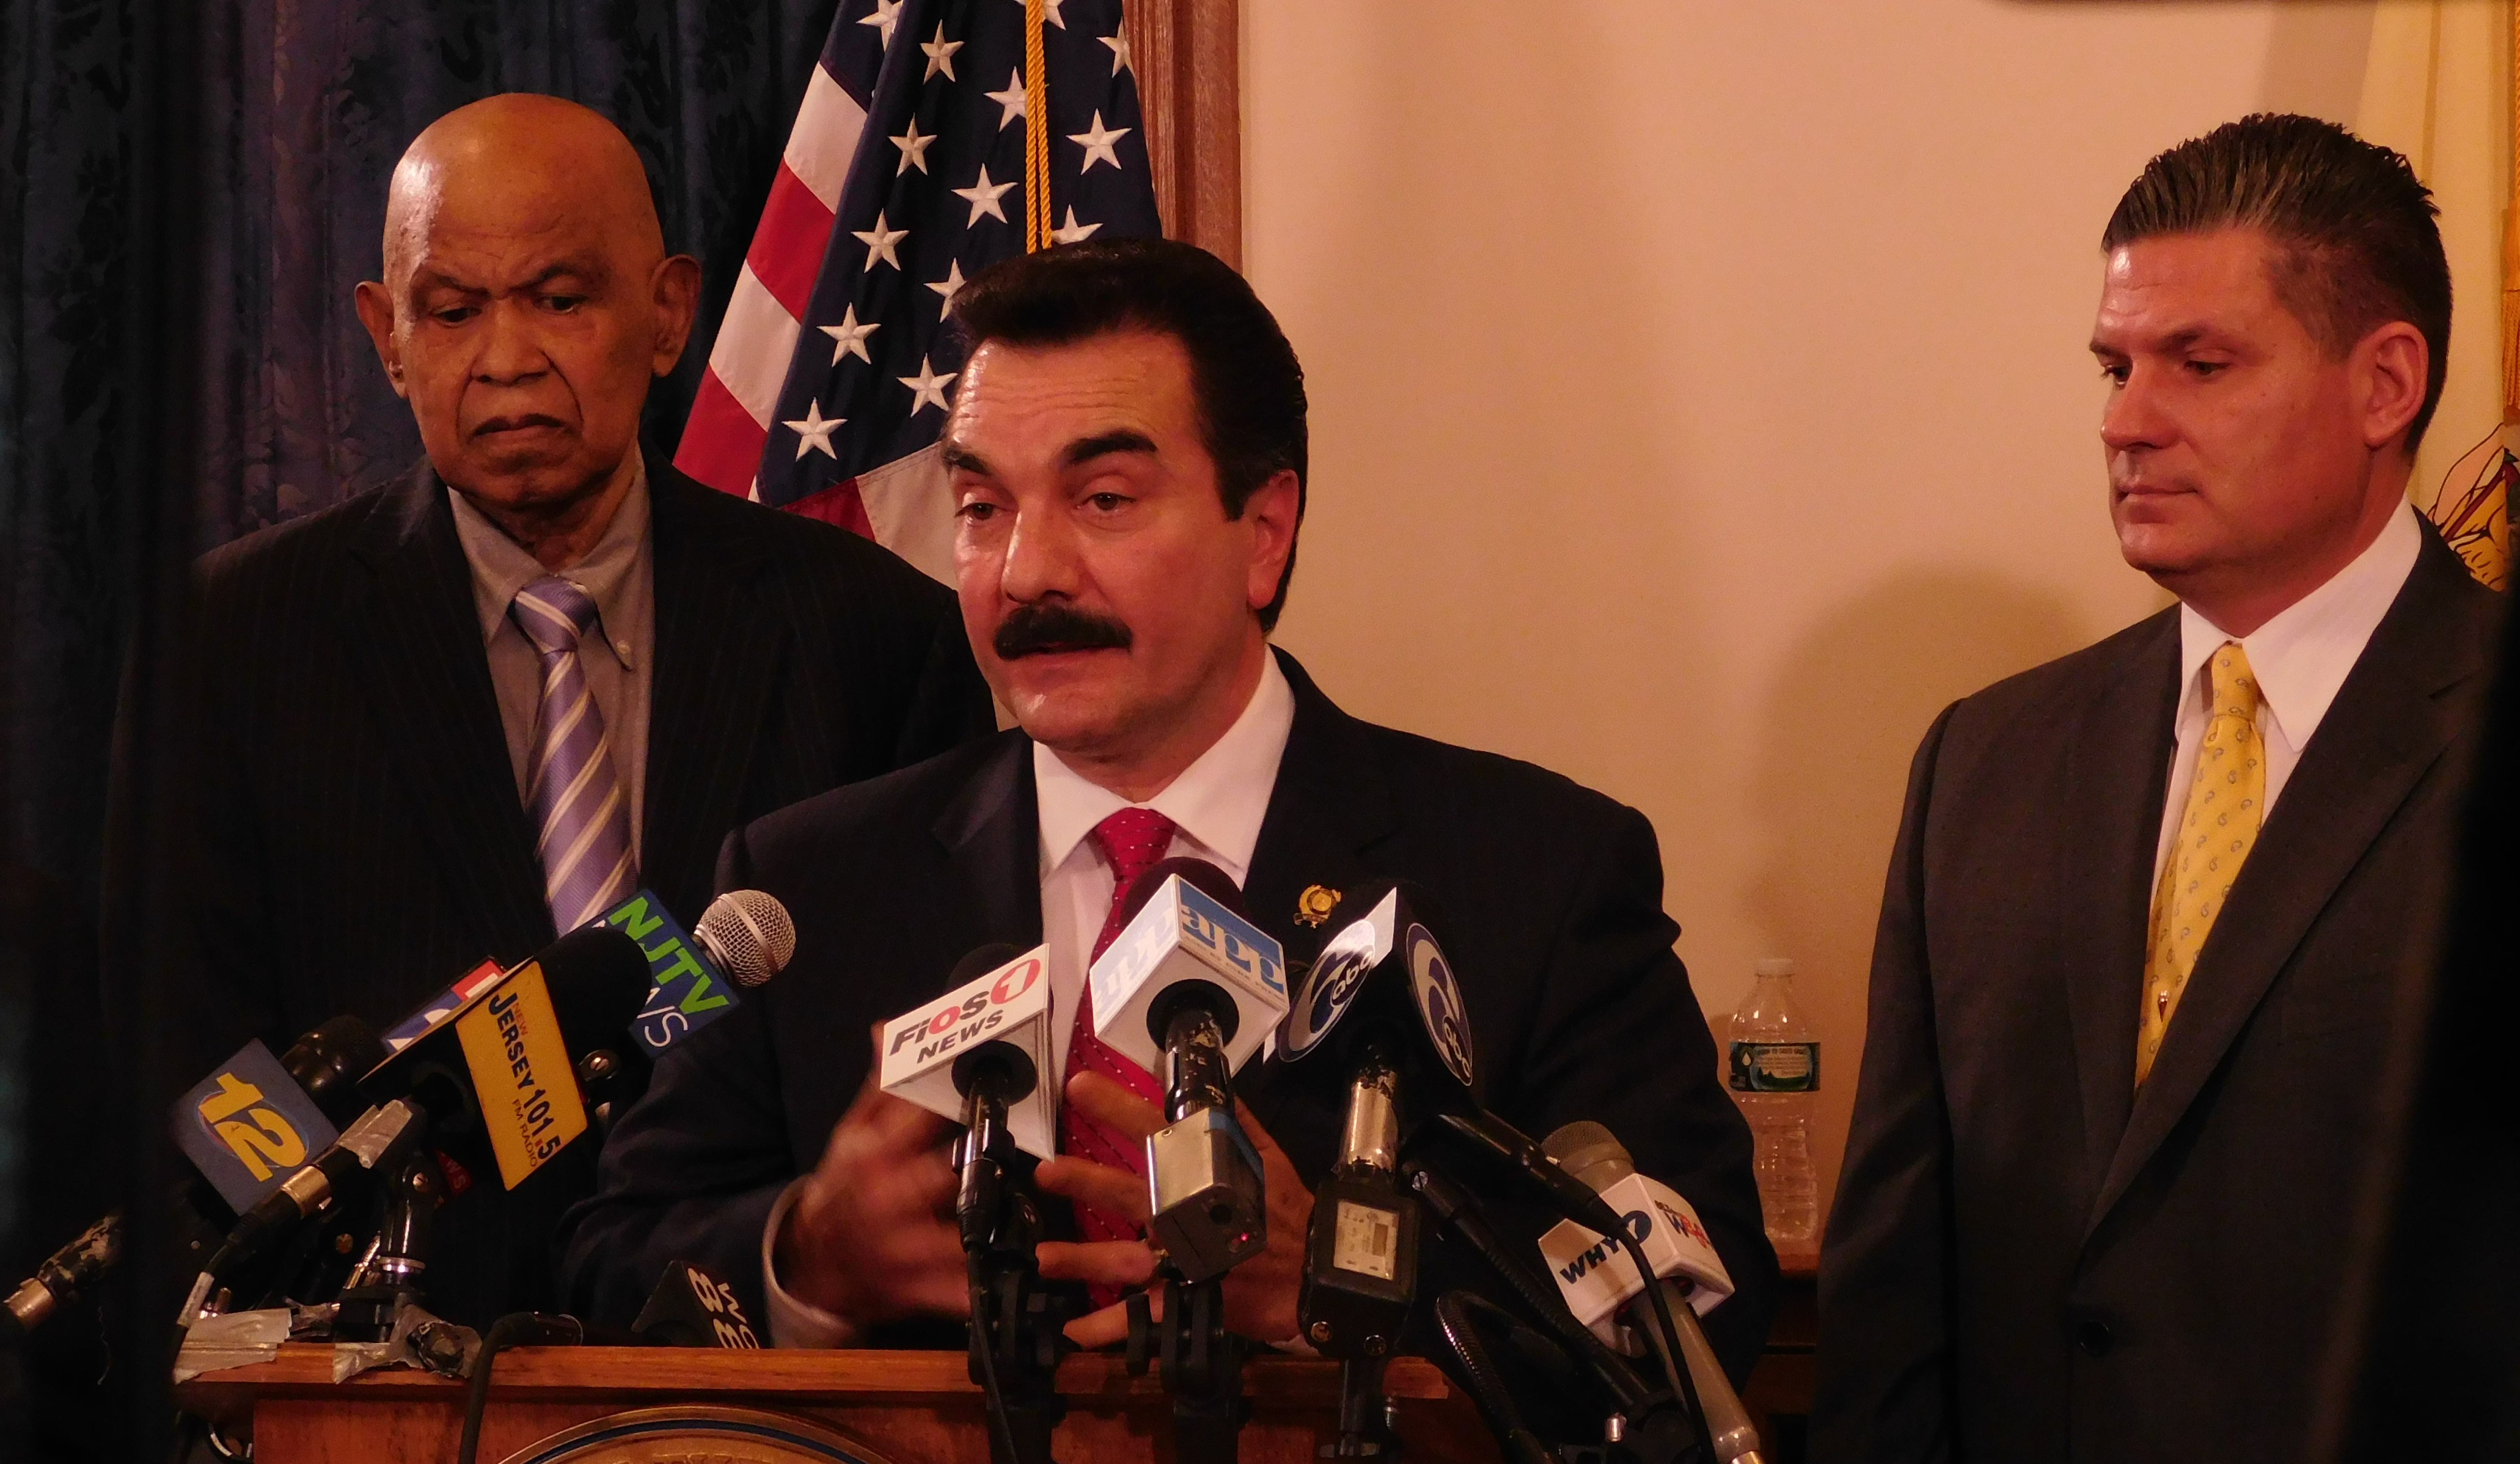 Jerry Green, Vincent Prieto and Lou Greenwald react to Christie's budget address.